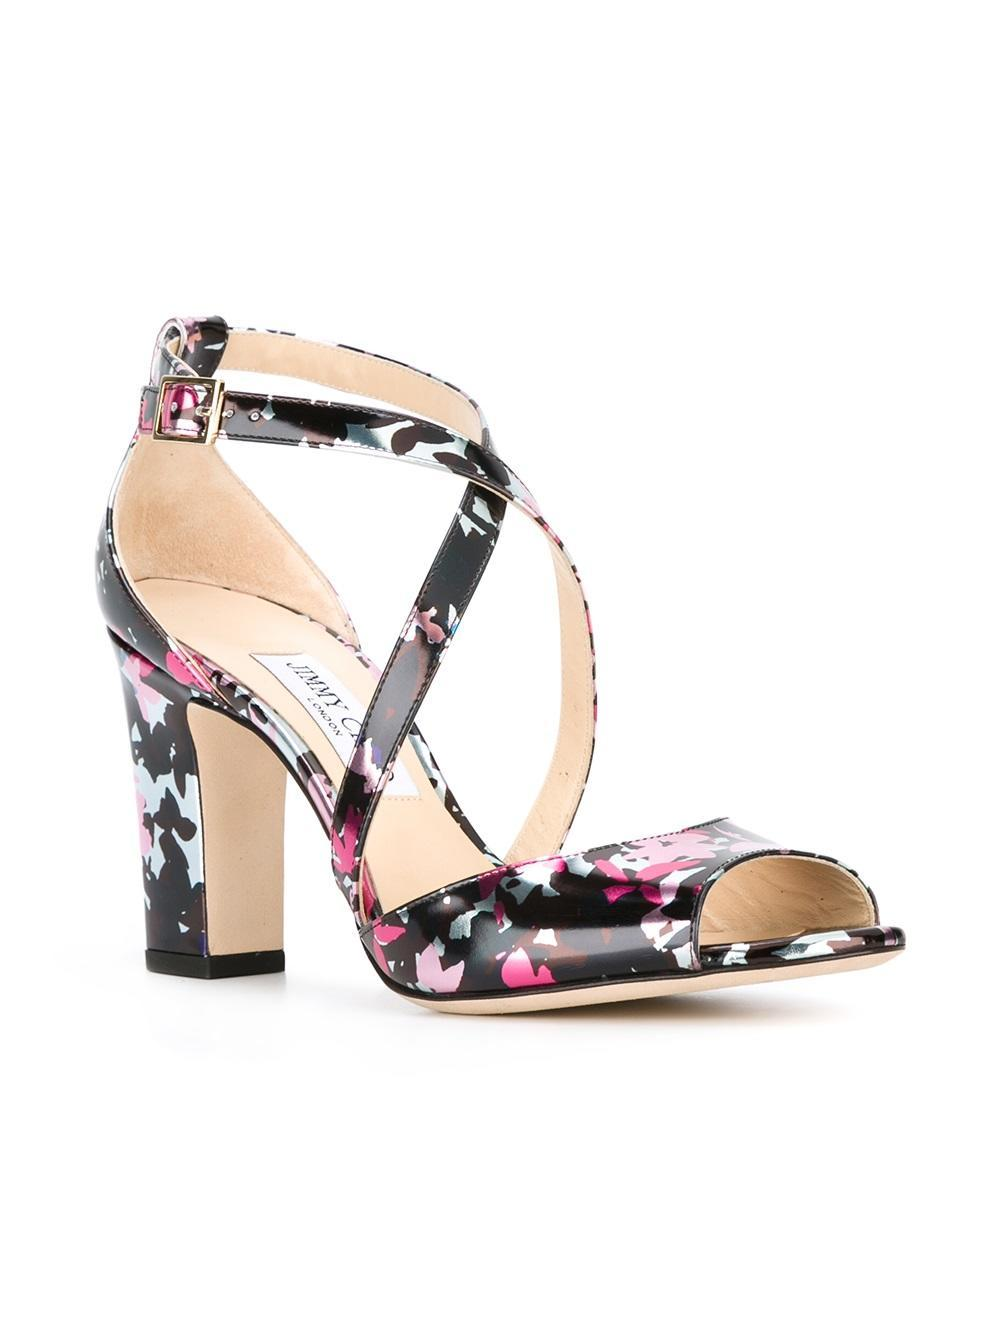 Lyst Jimmy Choo Carrie 85 Sandals